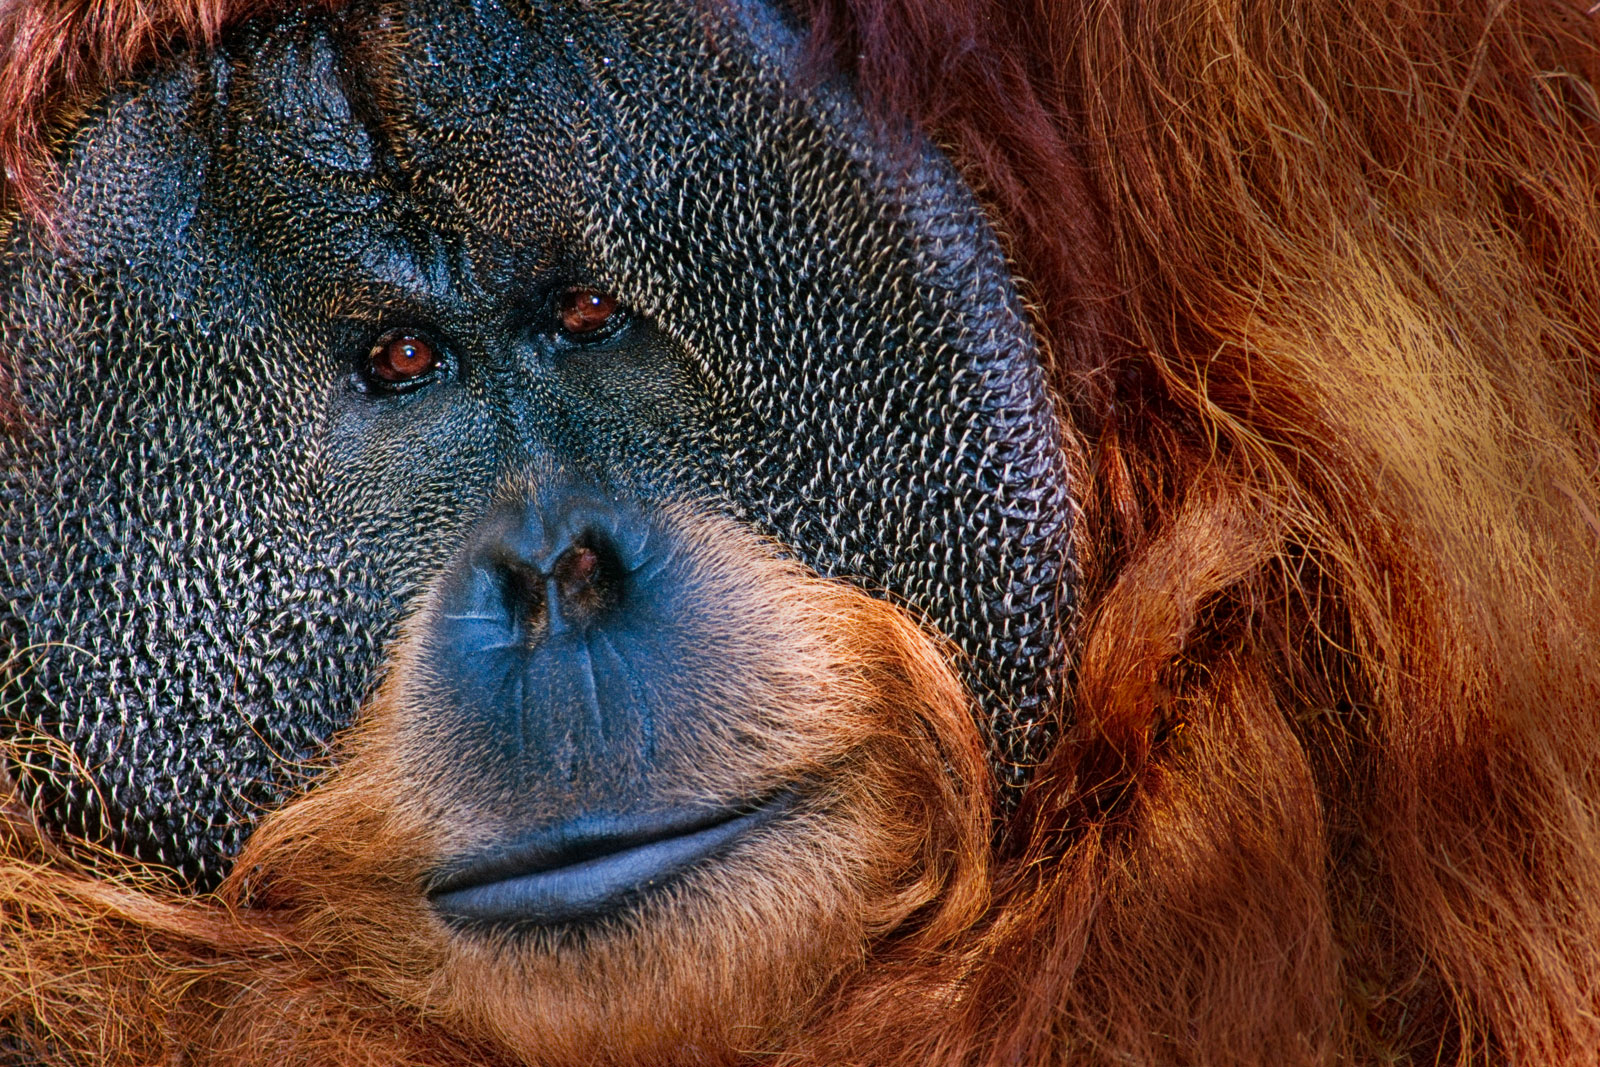 Bornean orangutan, native to Borneo